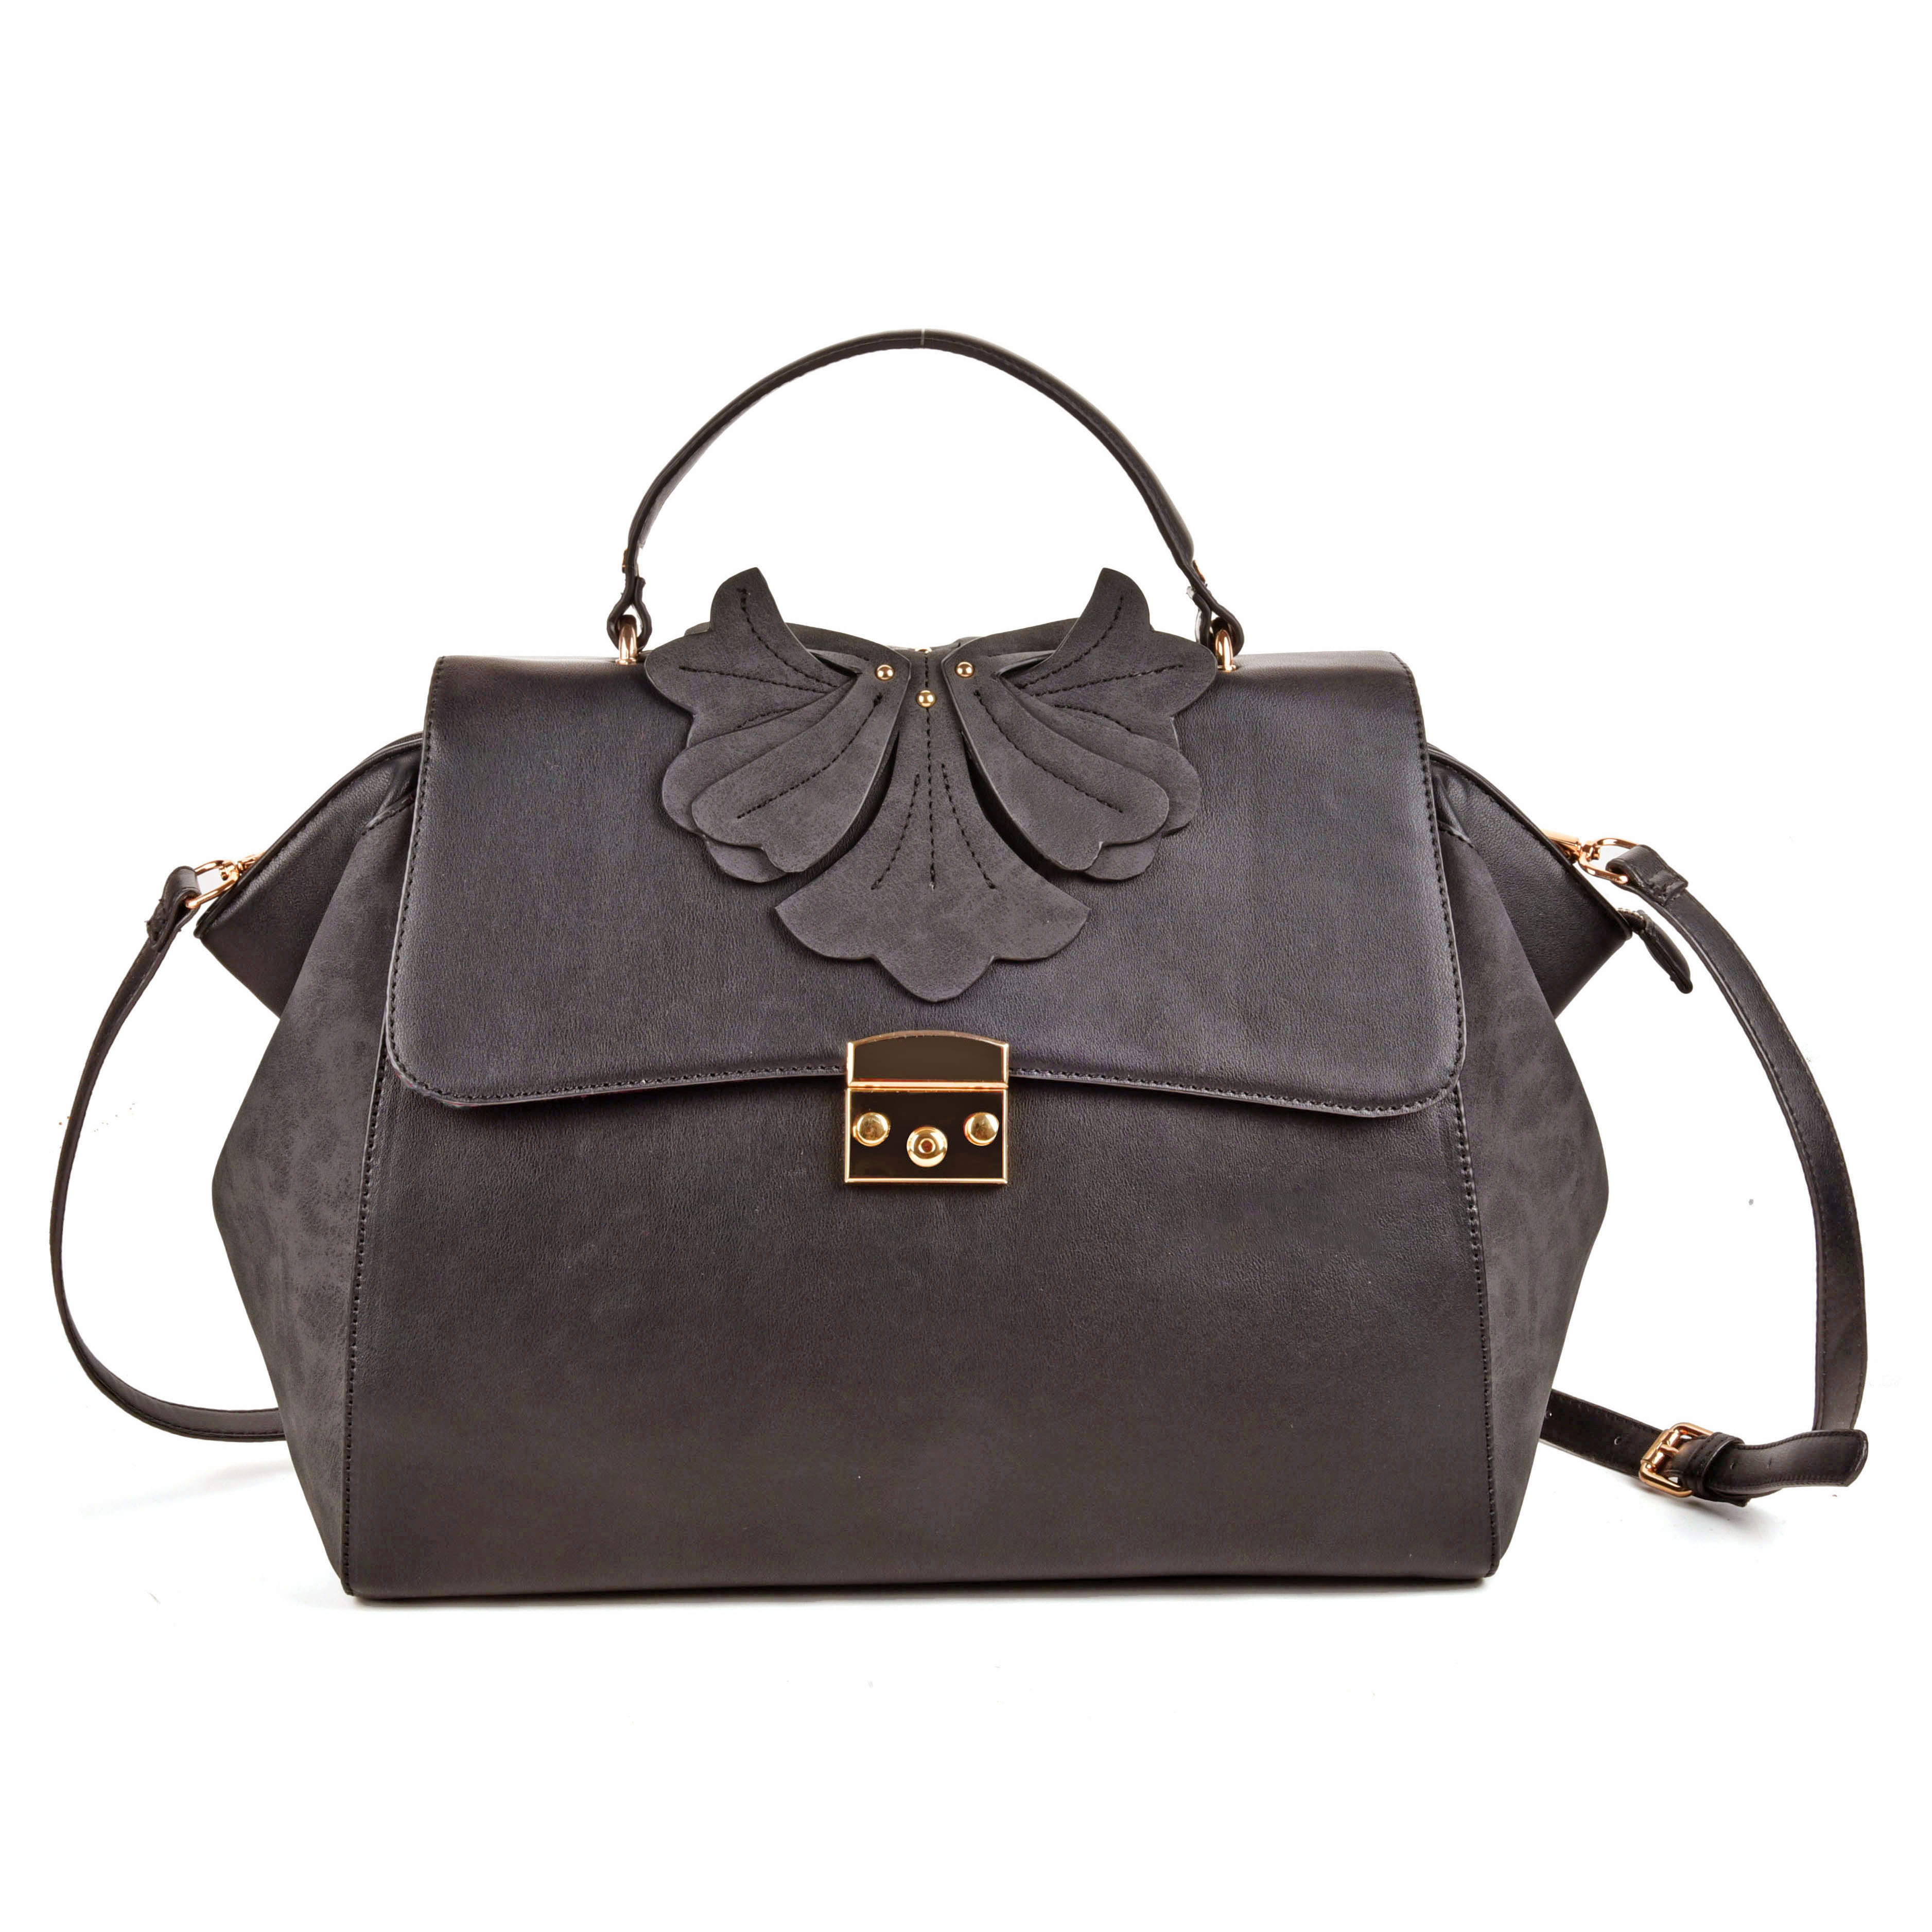 (Orchid) Sally Young Design Lock Front Satchel bag SY2112 Grey